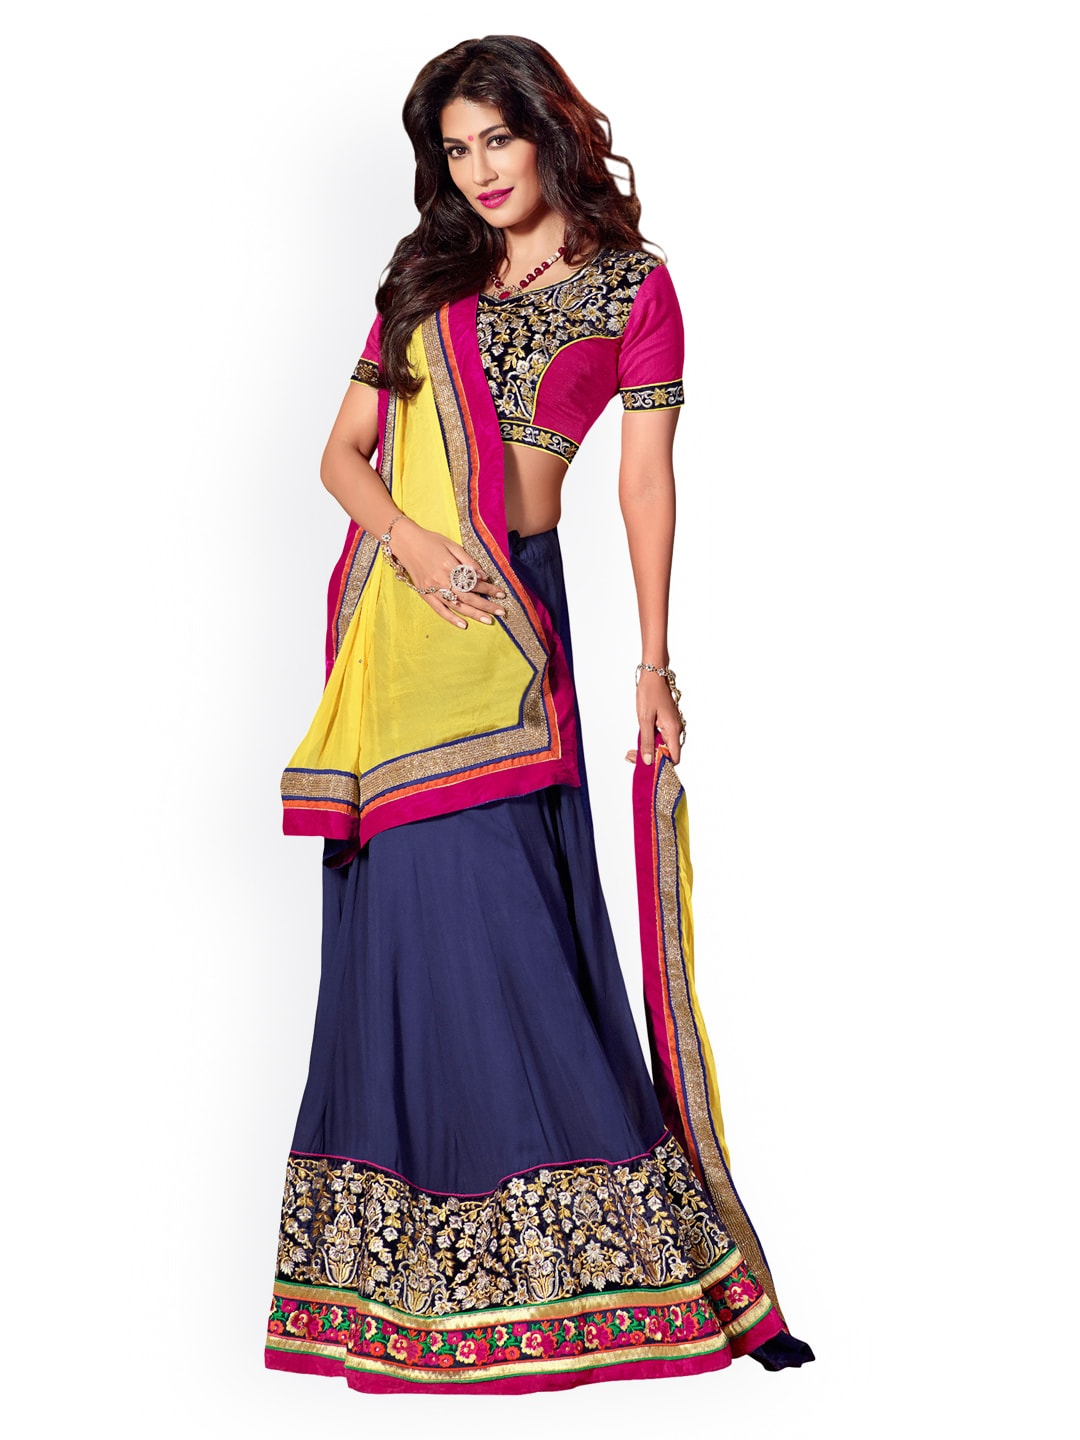 Touch Trends Pink & Navy Faux Georgette Semi-Stitched Lehenga Choli Material with Dupatta